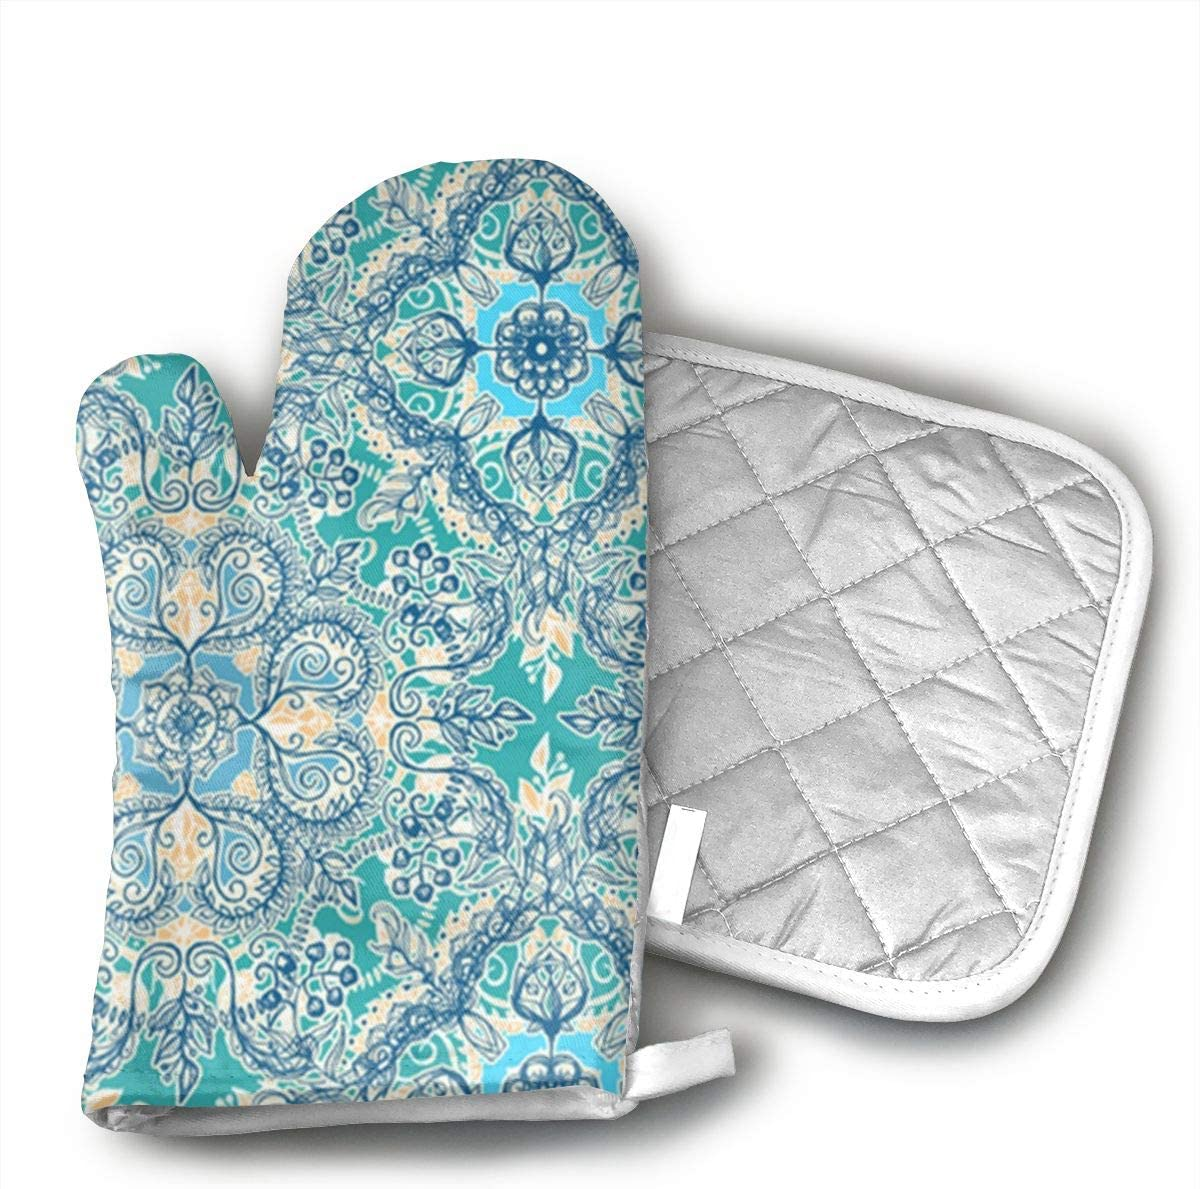 STRWBfhk Gypsy Floral in Teal Oven Mitts,Heat Resistant Oven Gloves and Pot Holders, Safe BBQ Cooking Baking Grilling